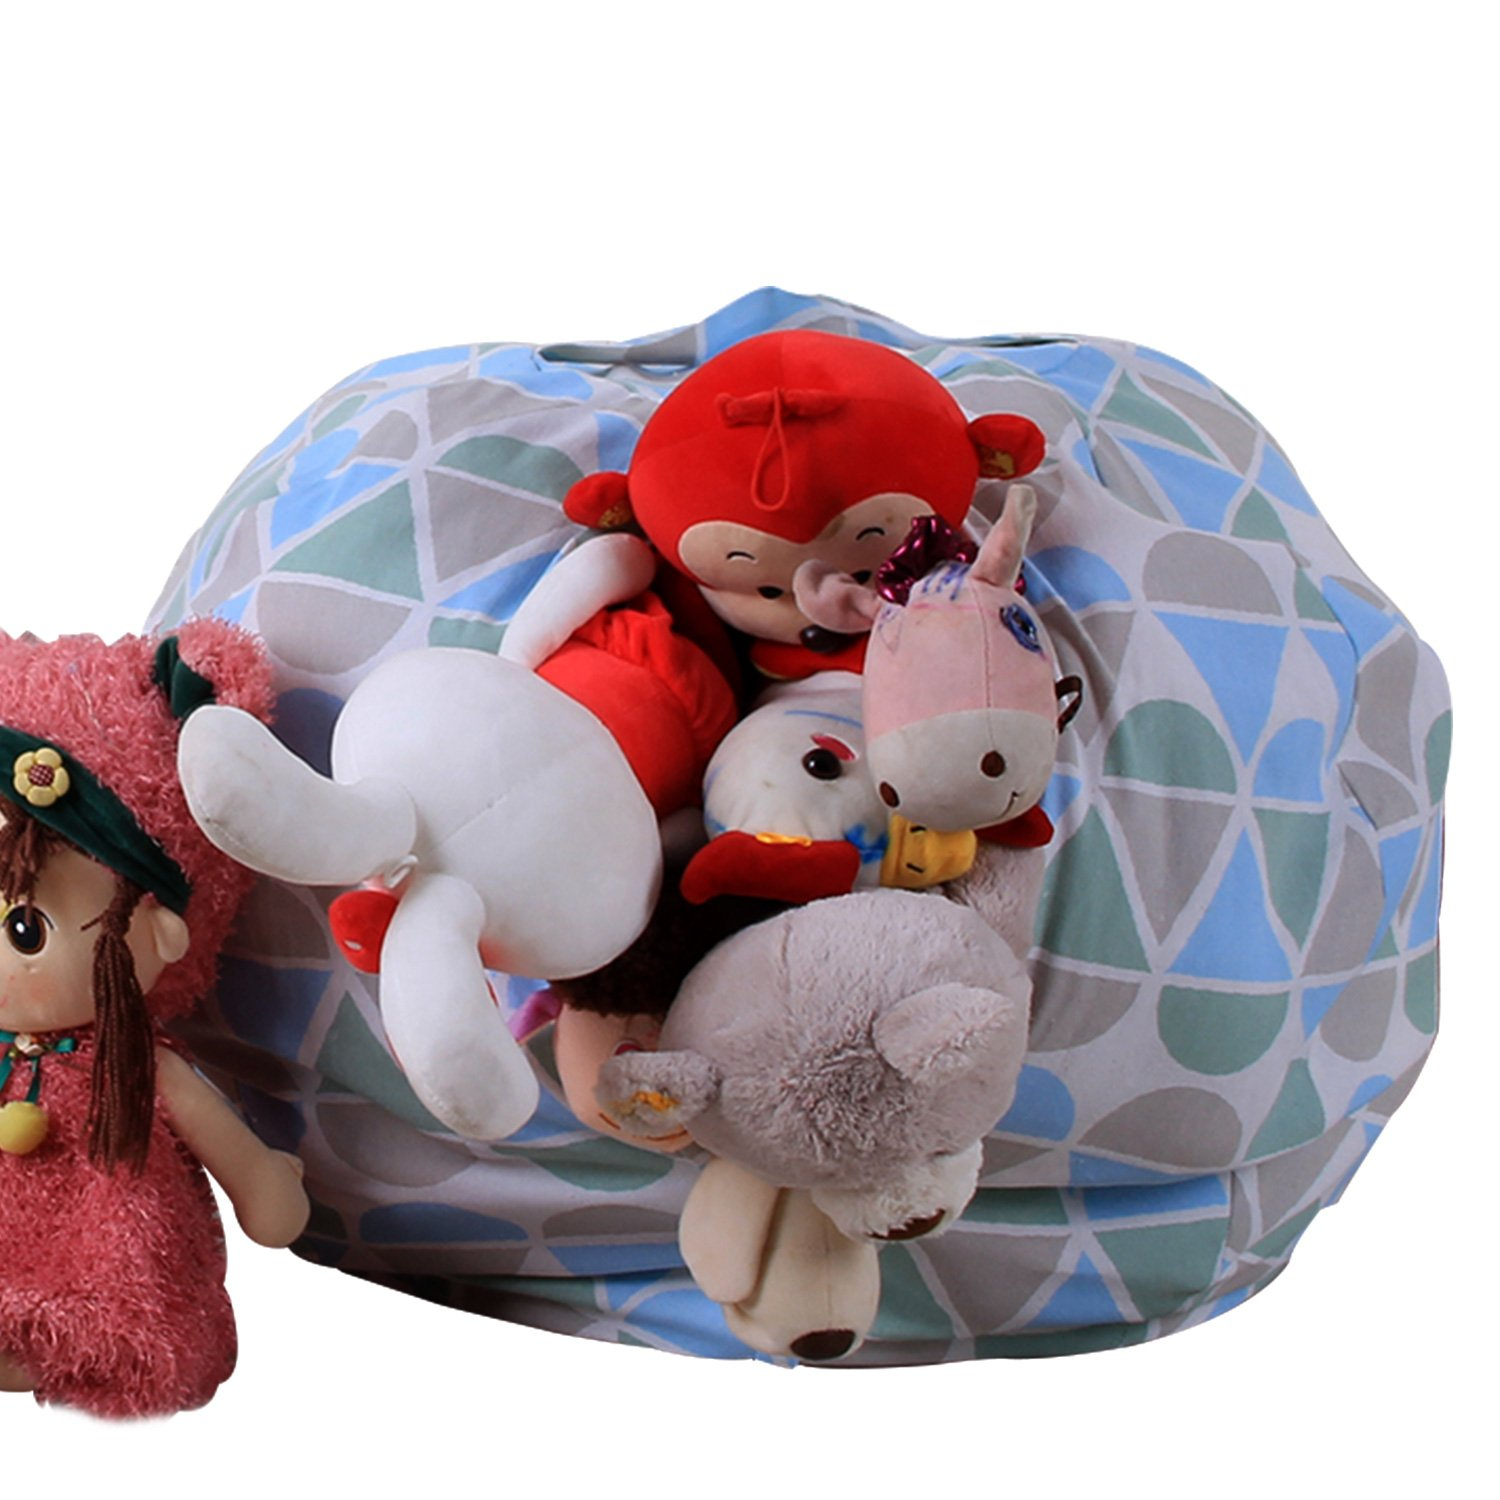 Amazon.com: Premium Quality 32 Inch Storage Bean Bag - Stuffed Animal Storage Bean Bag Chair   Perfect Storage Solution For Blankets / Pillows / Towels ...